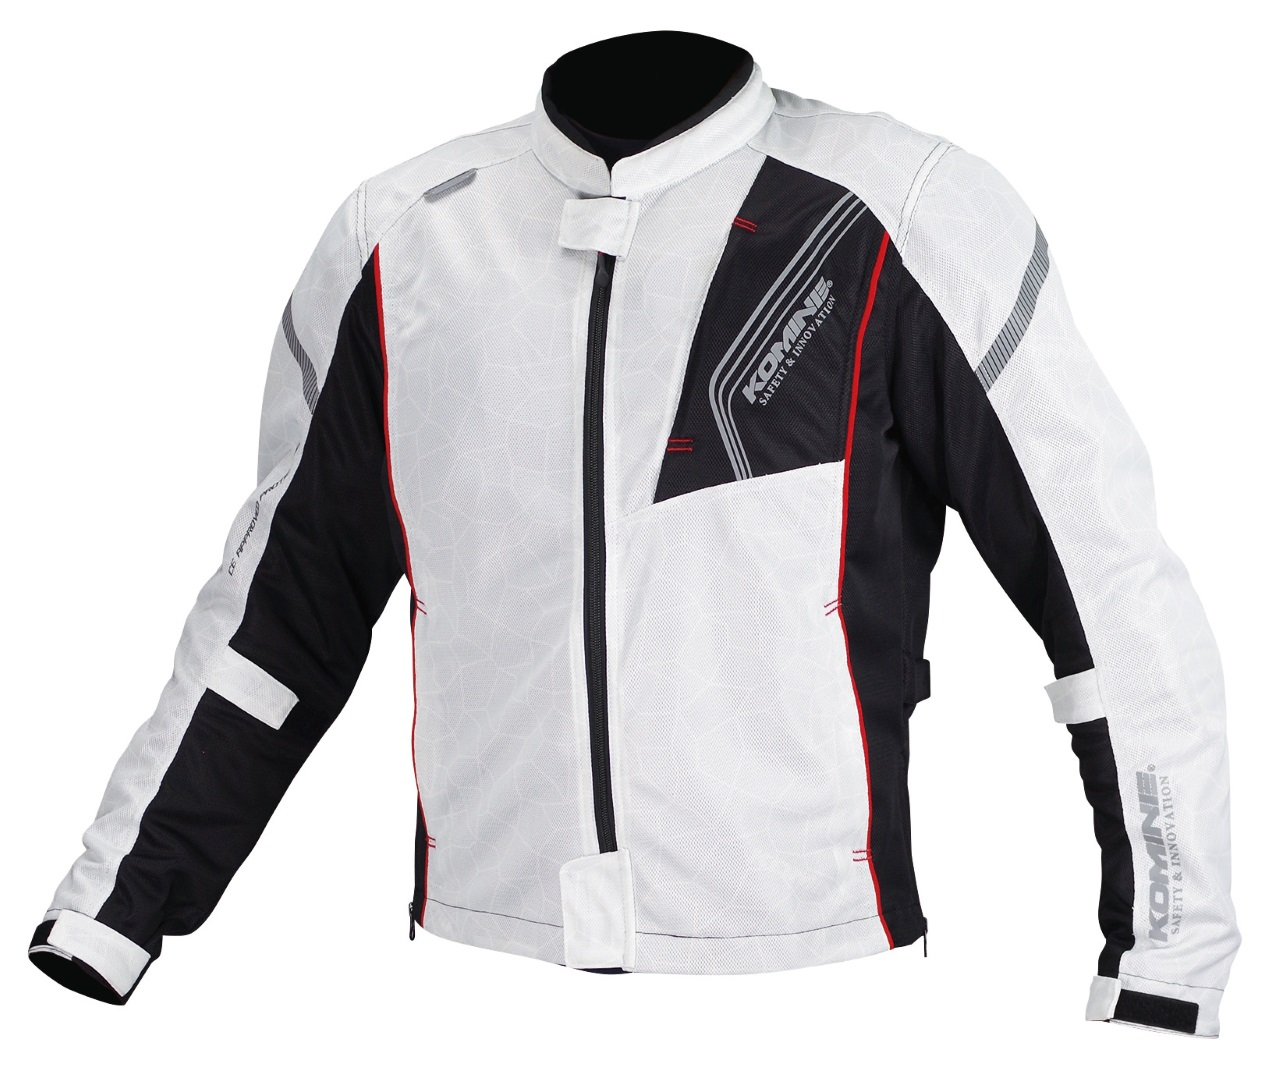 JK-128 Protect Full Mesh Jacket